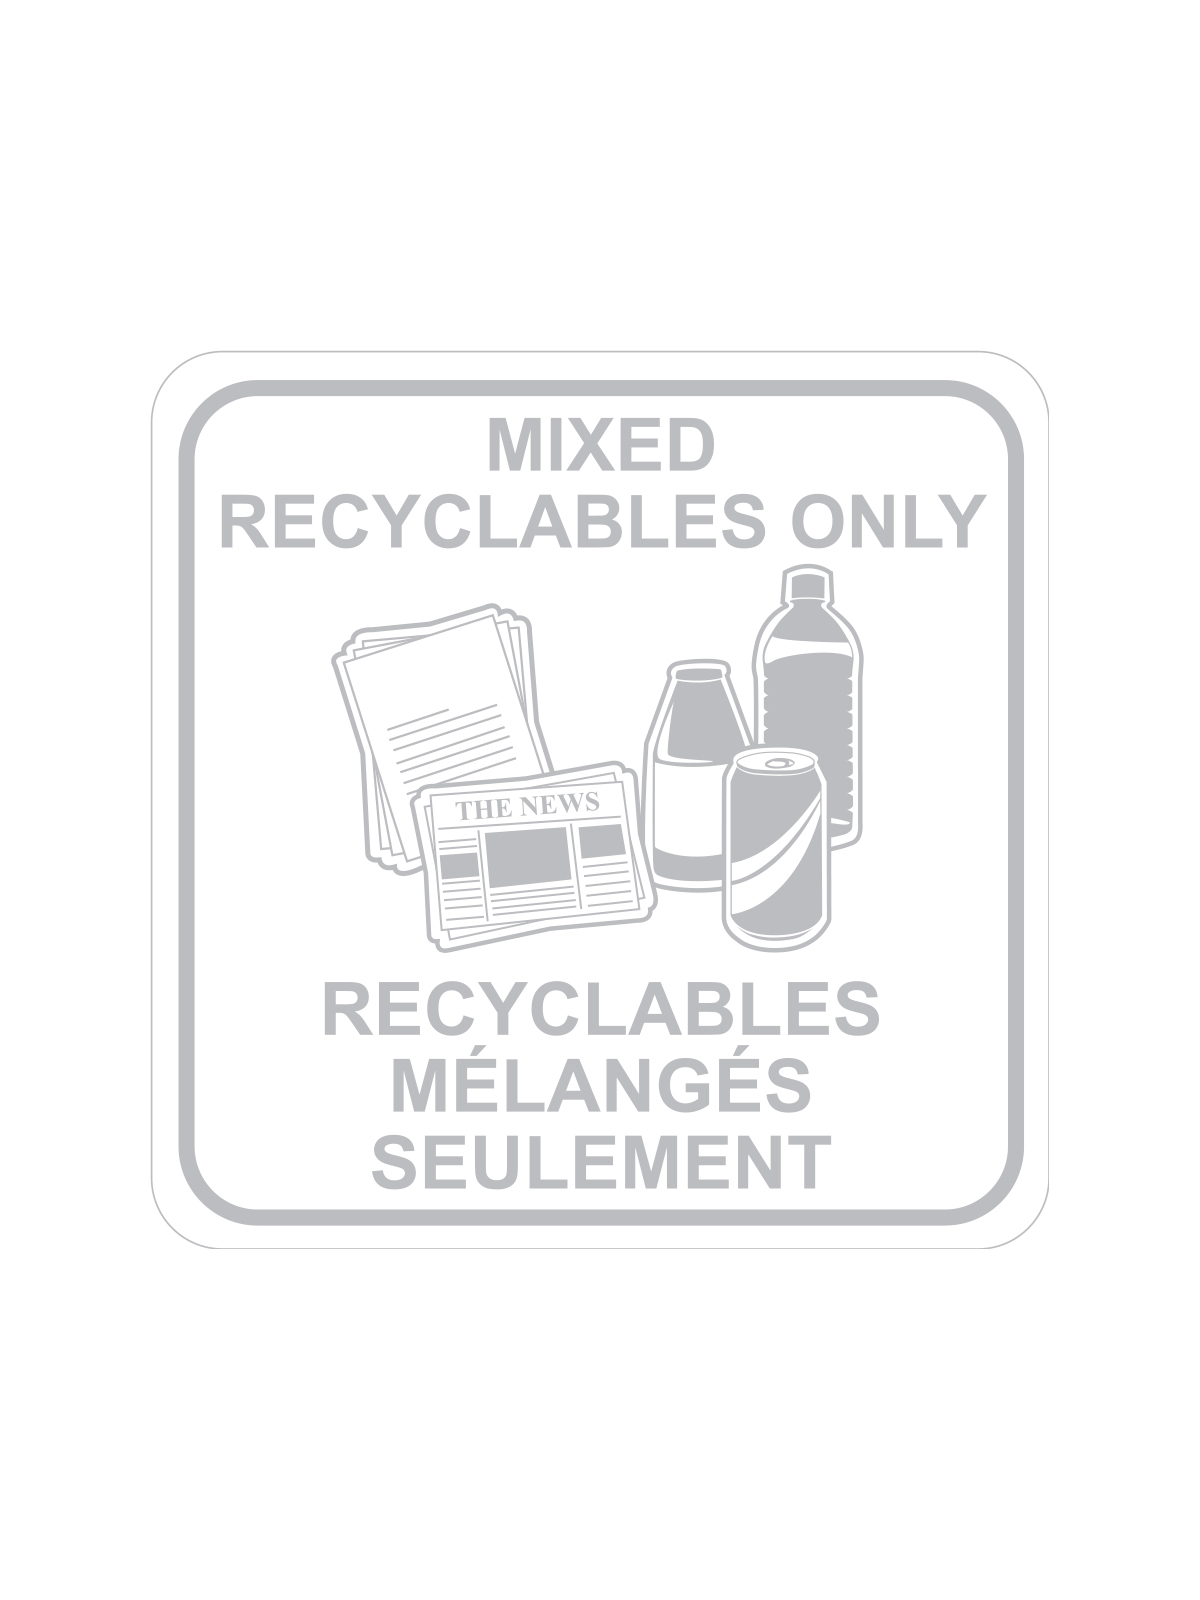 SQUARE LABEL MIXED RECYCLABLES ONLY - ENG/FRE